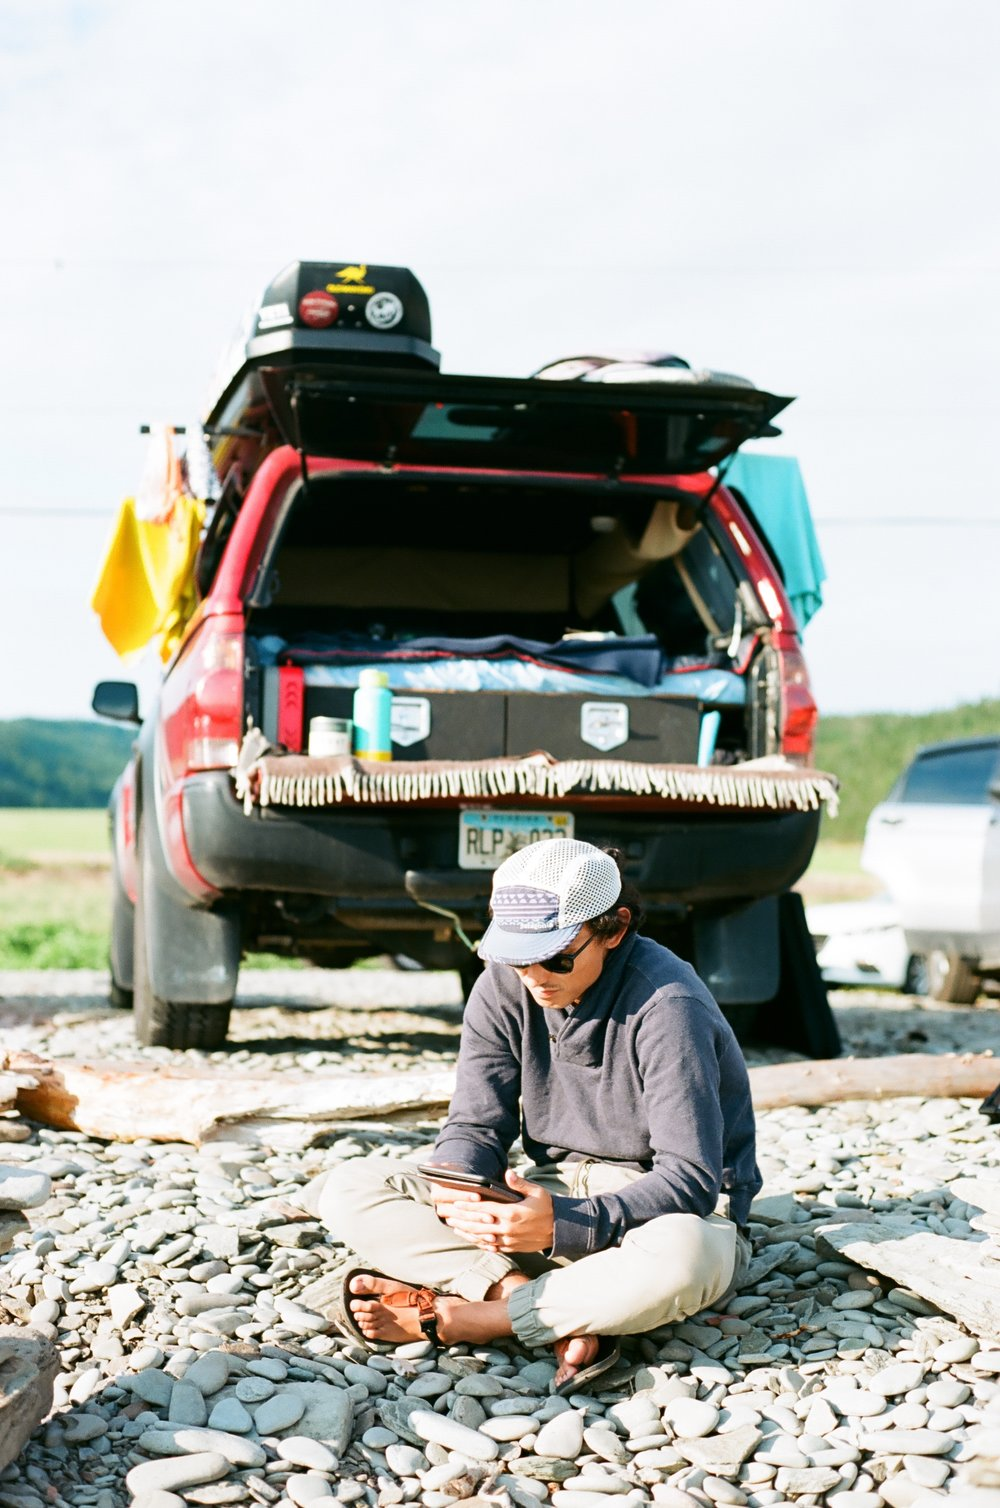 Chilling at camp on The Bay of Fundy, 35mm